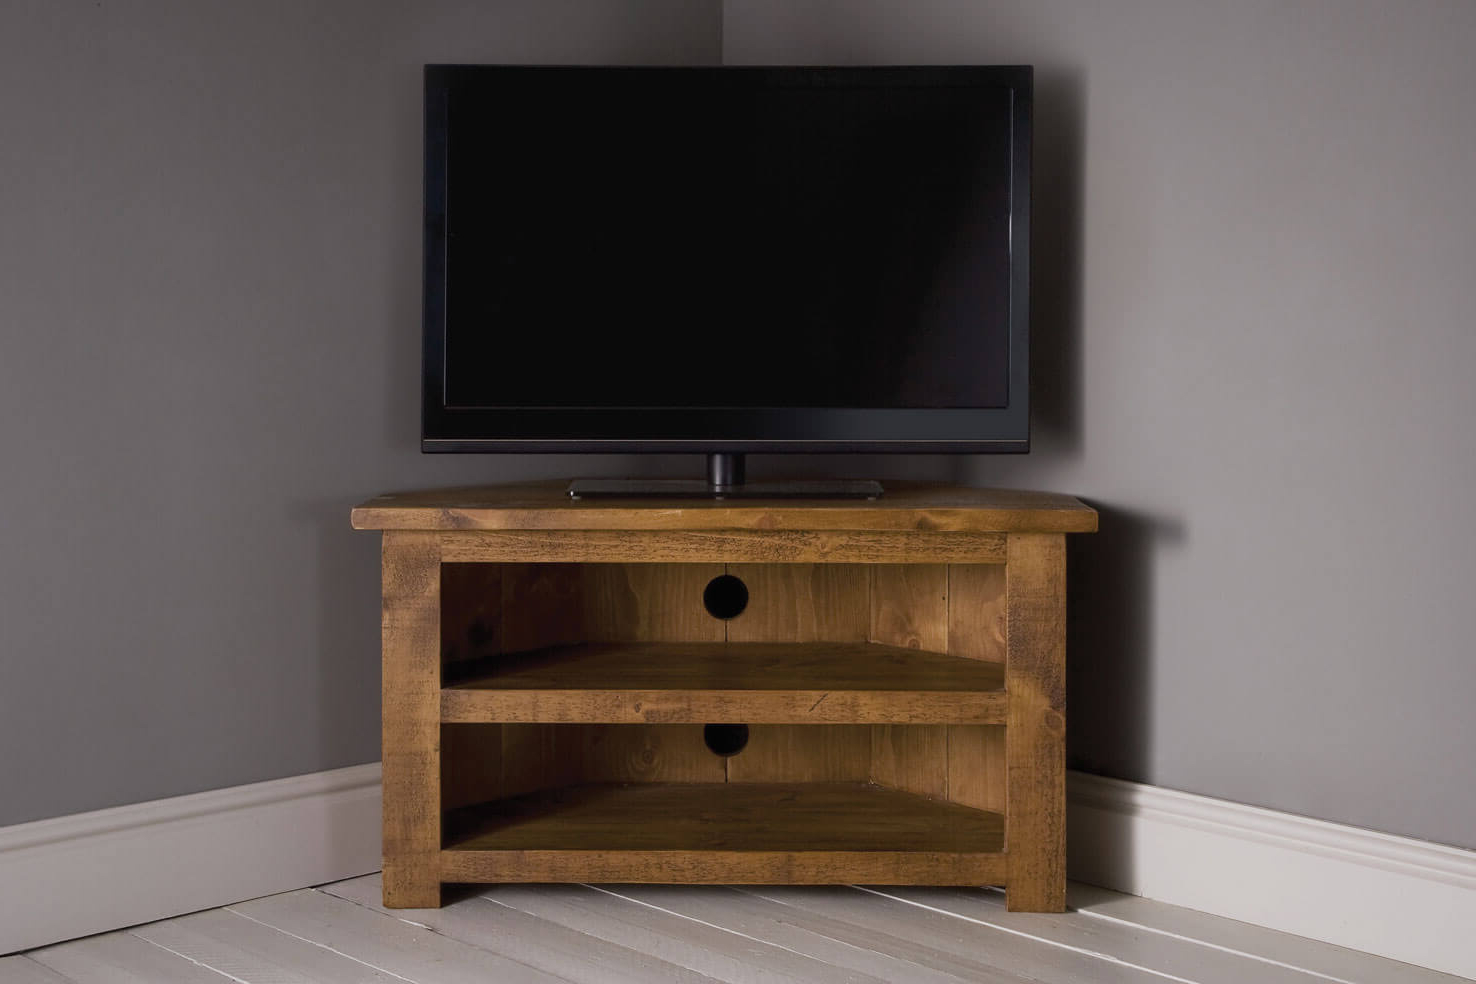 Best And Newest Corner Tv Units Regarding Plank Corner Tv Unit With Shelfindigo Furniture (View 7 of 20)